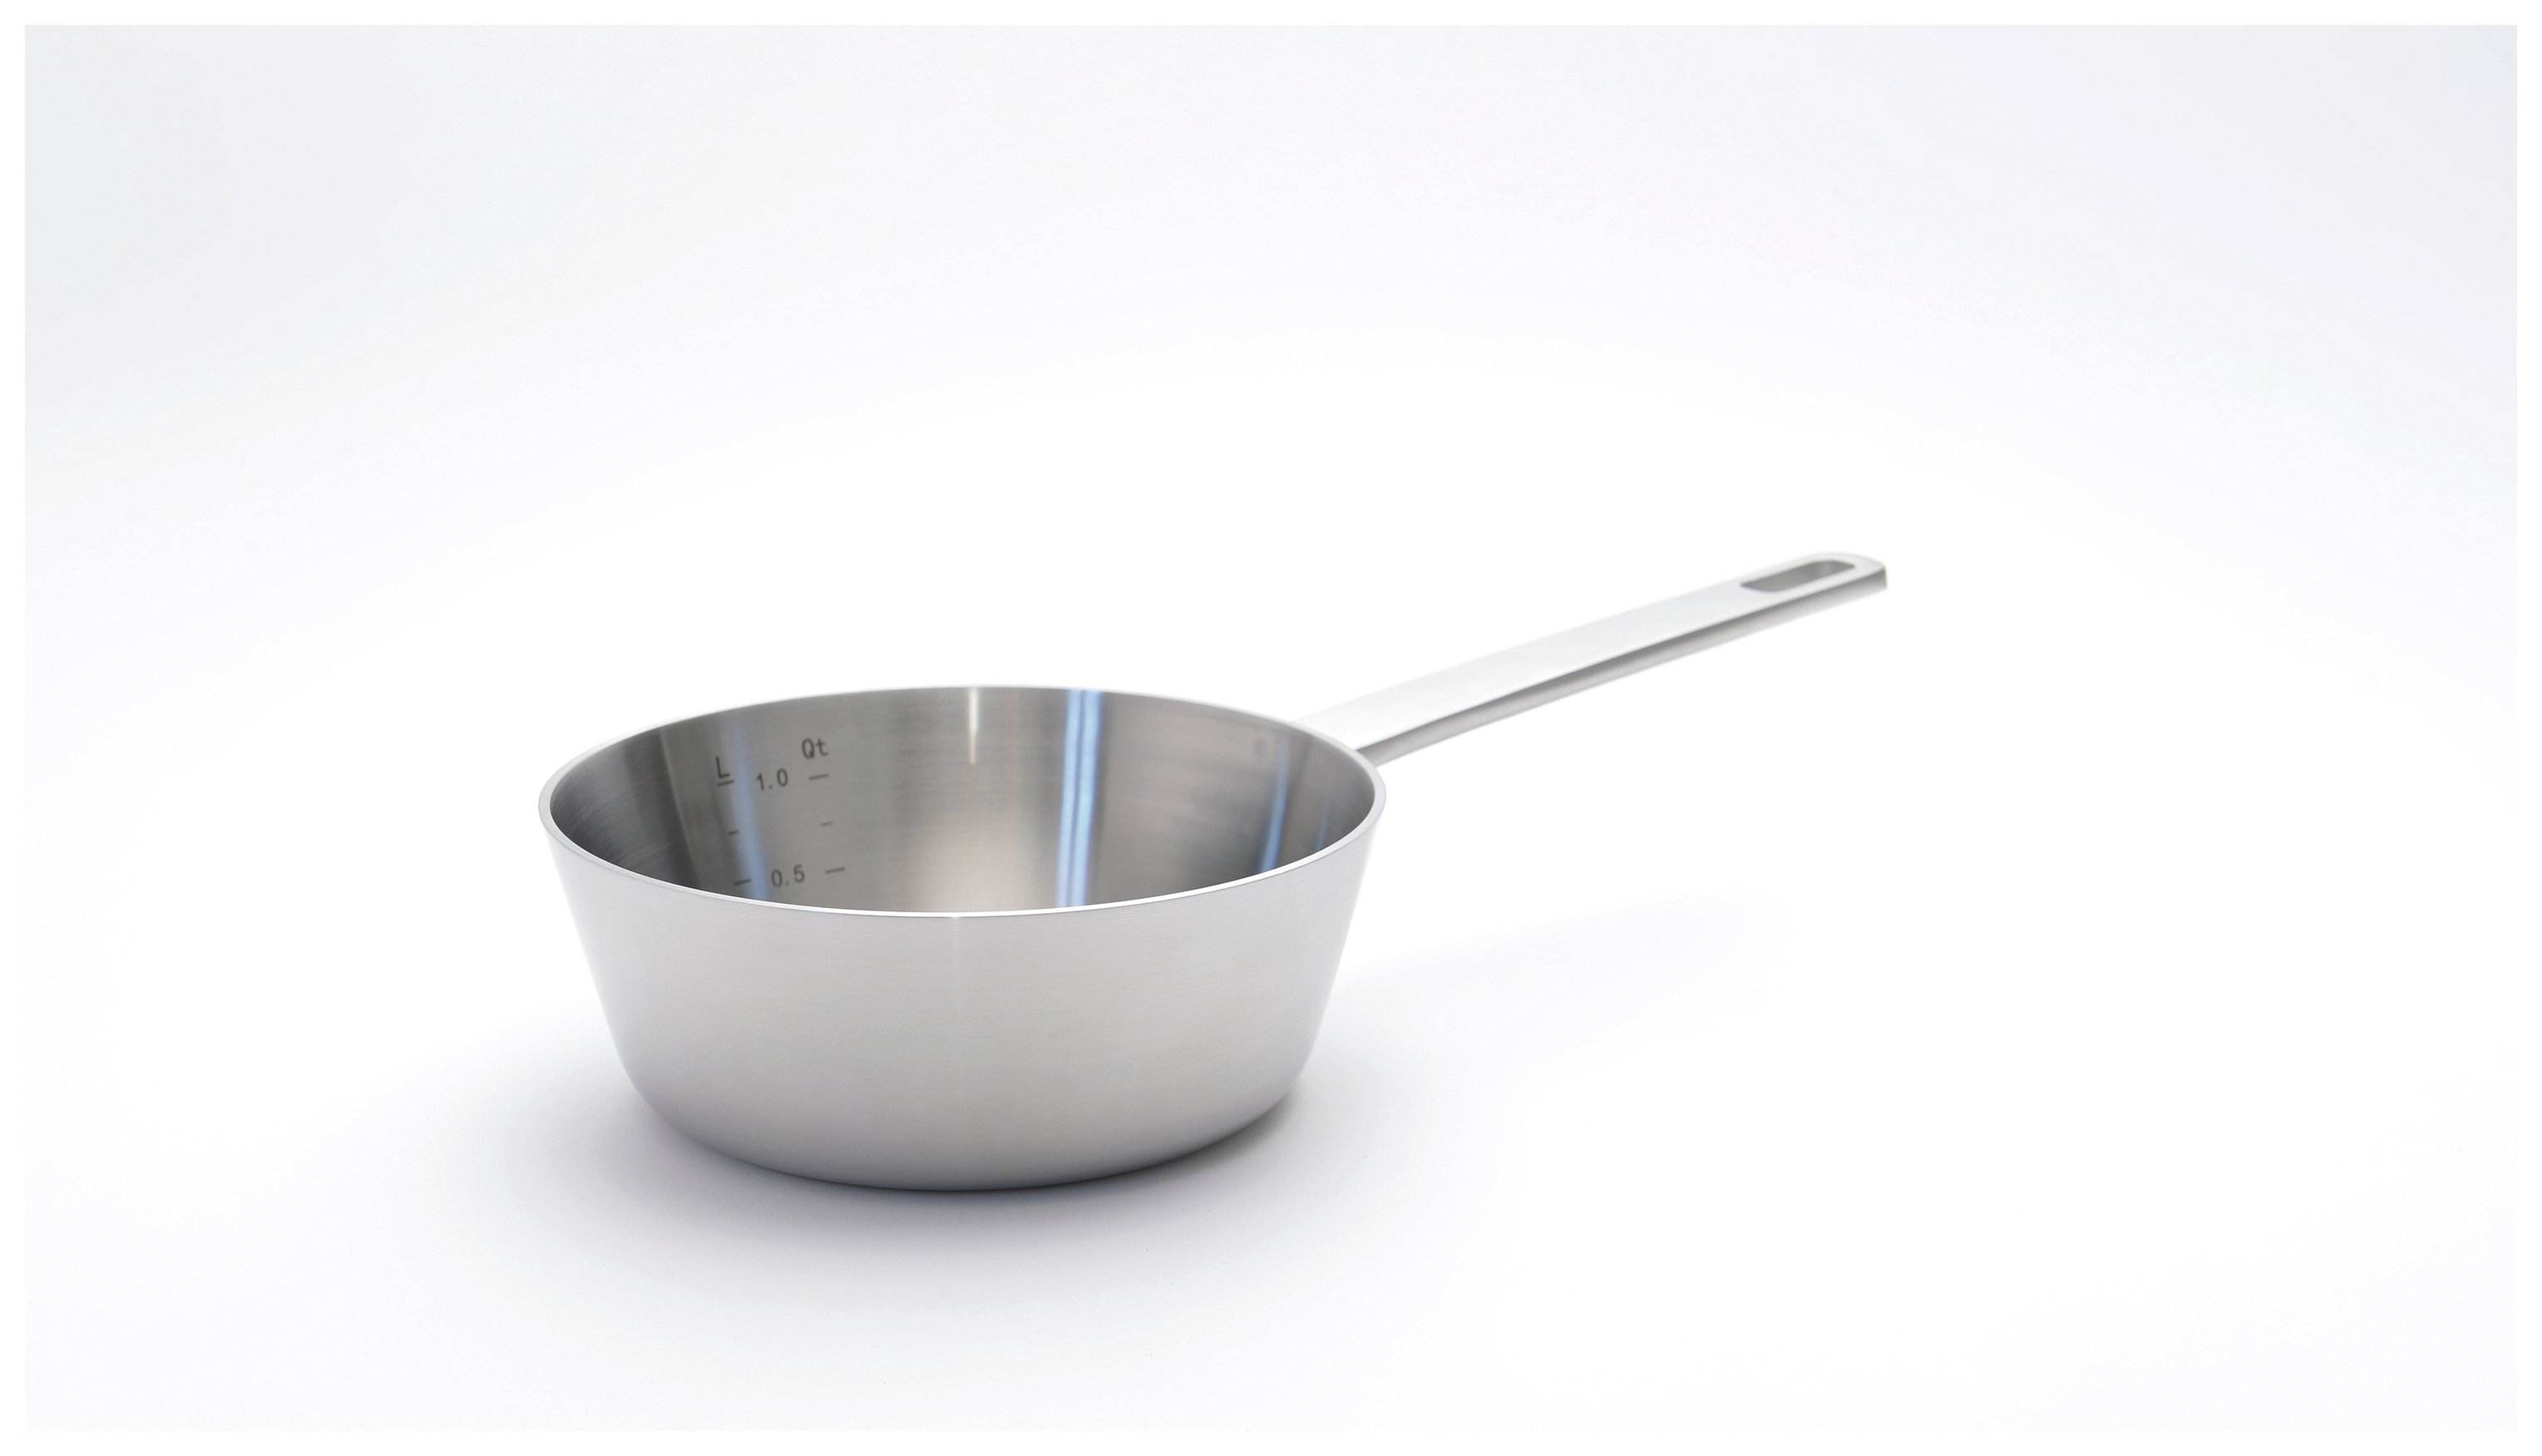 Image of BergHOFF 18cm Stainless Steel 5-Ply Chefs Pan.